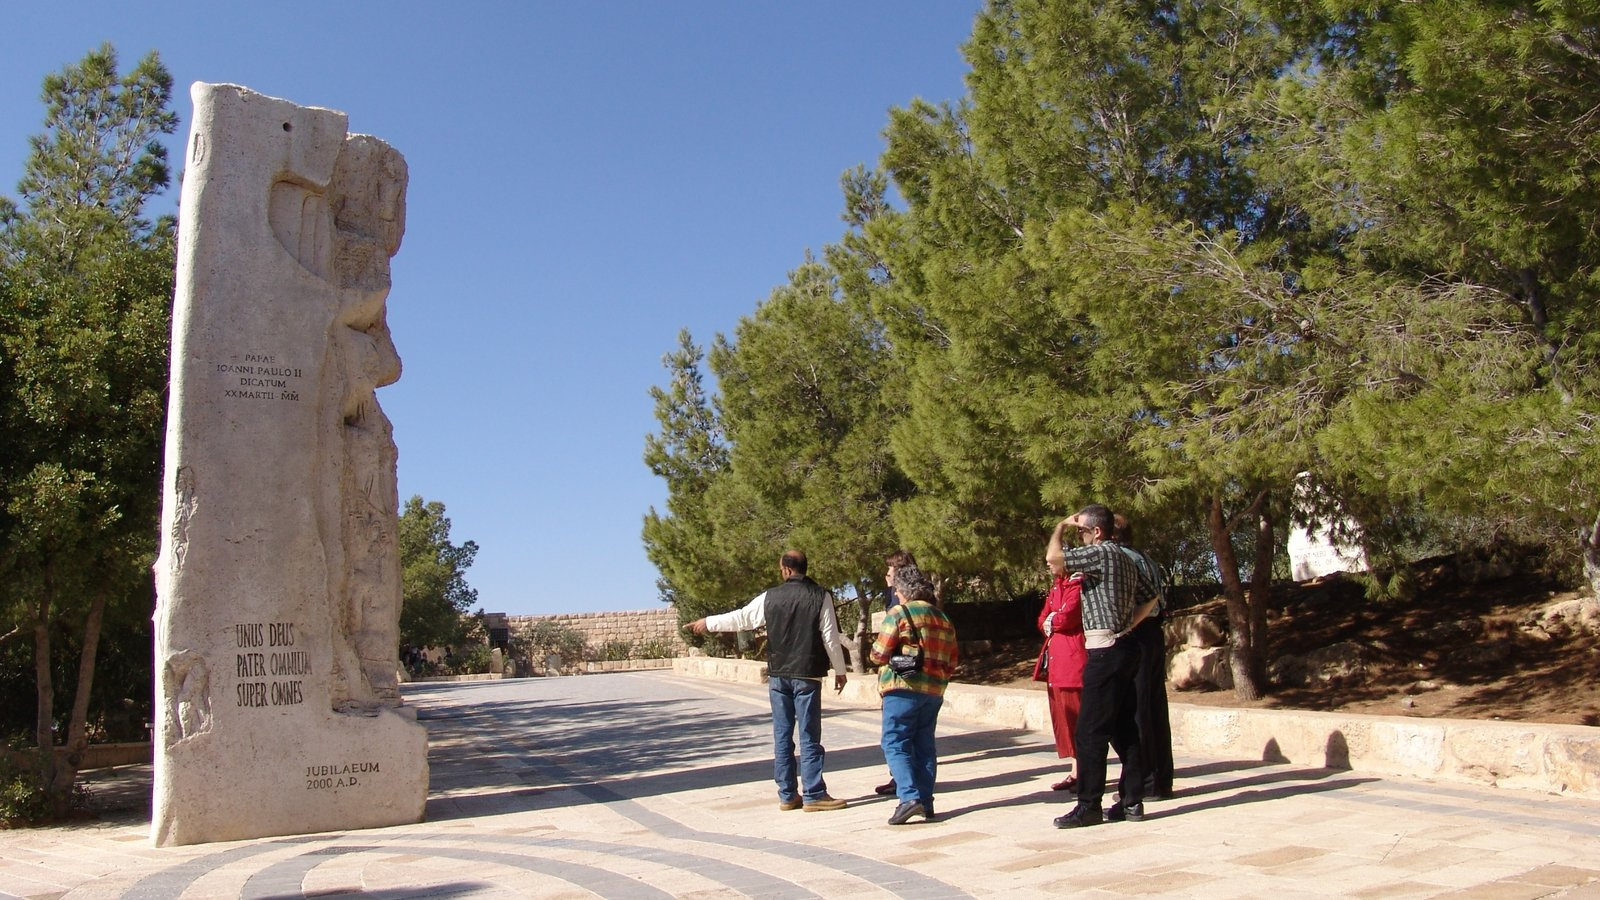 Mount Nebo featuring a monument and street scenes as well as a small group of people